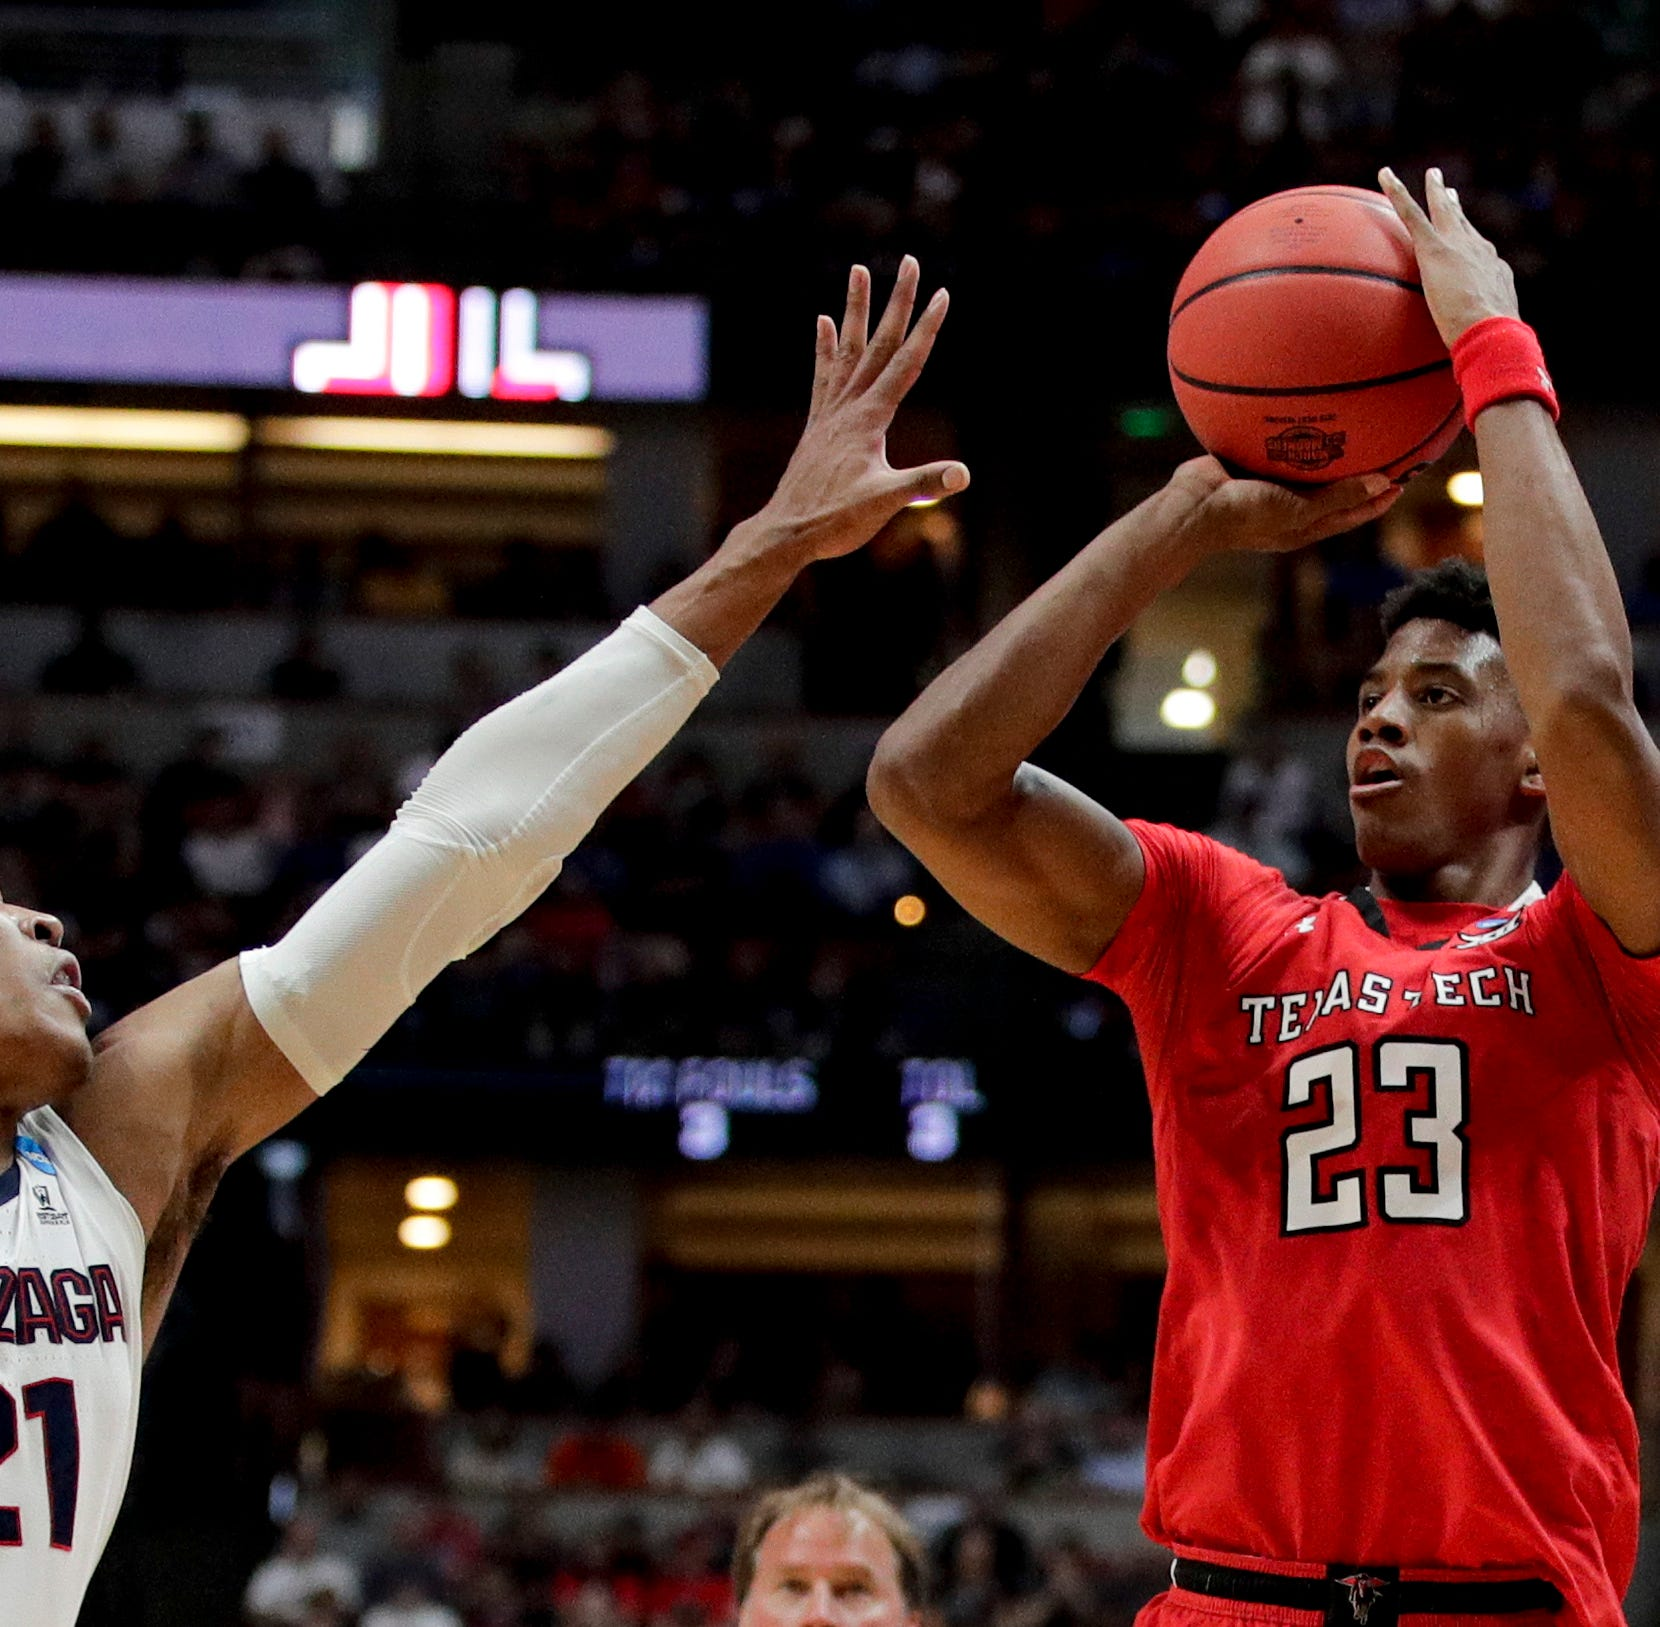 Jarrett Culver, 'no-middle D' and what else you need to know about Texas Tech